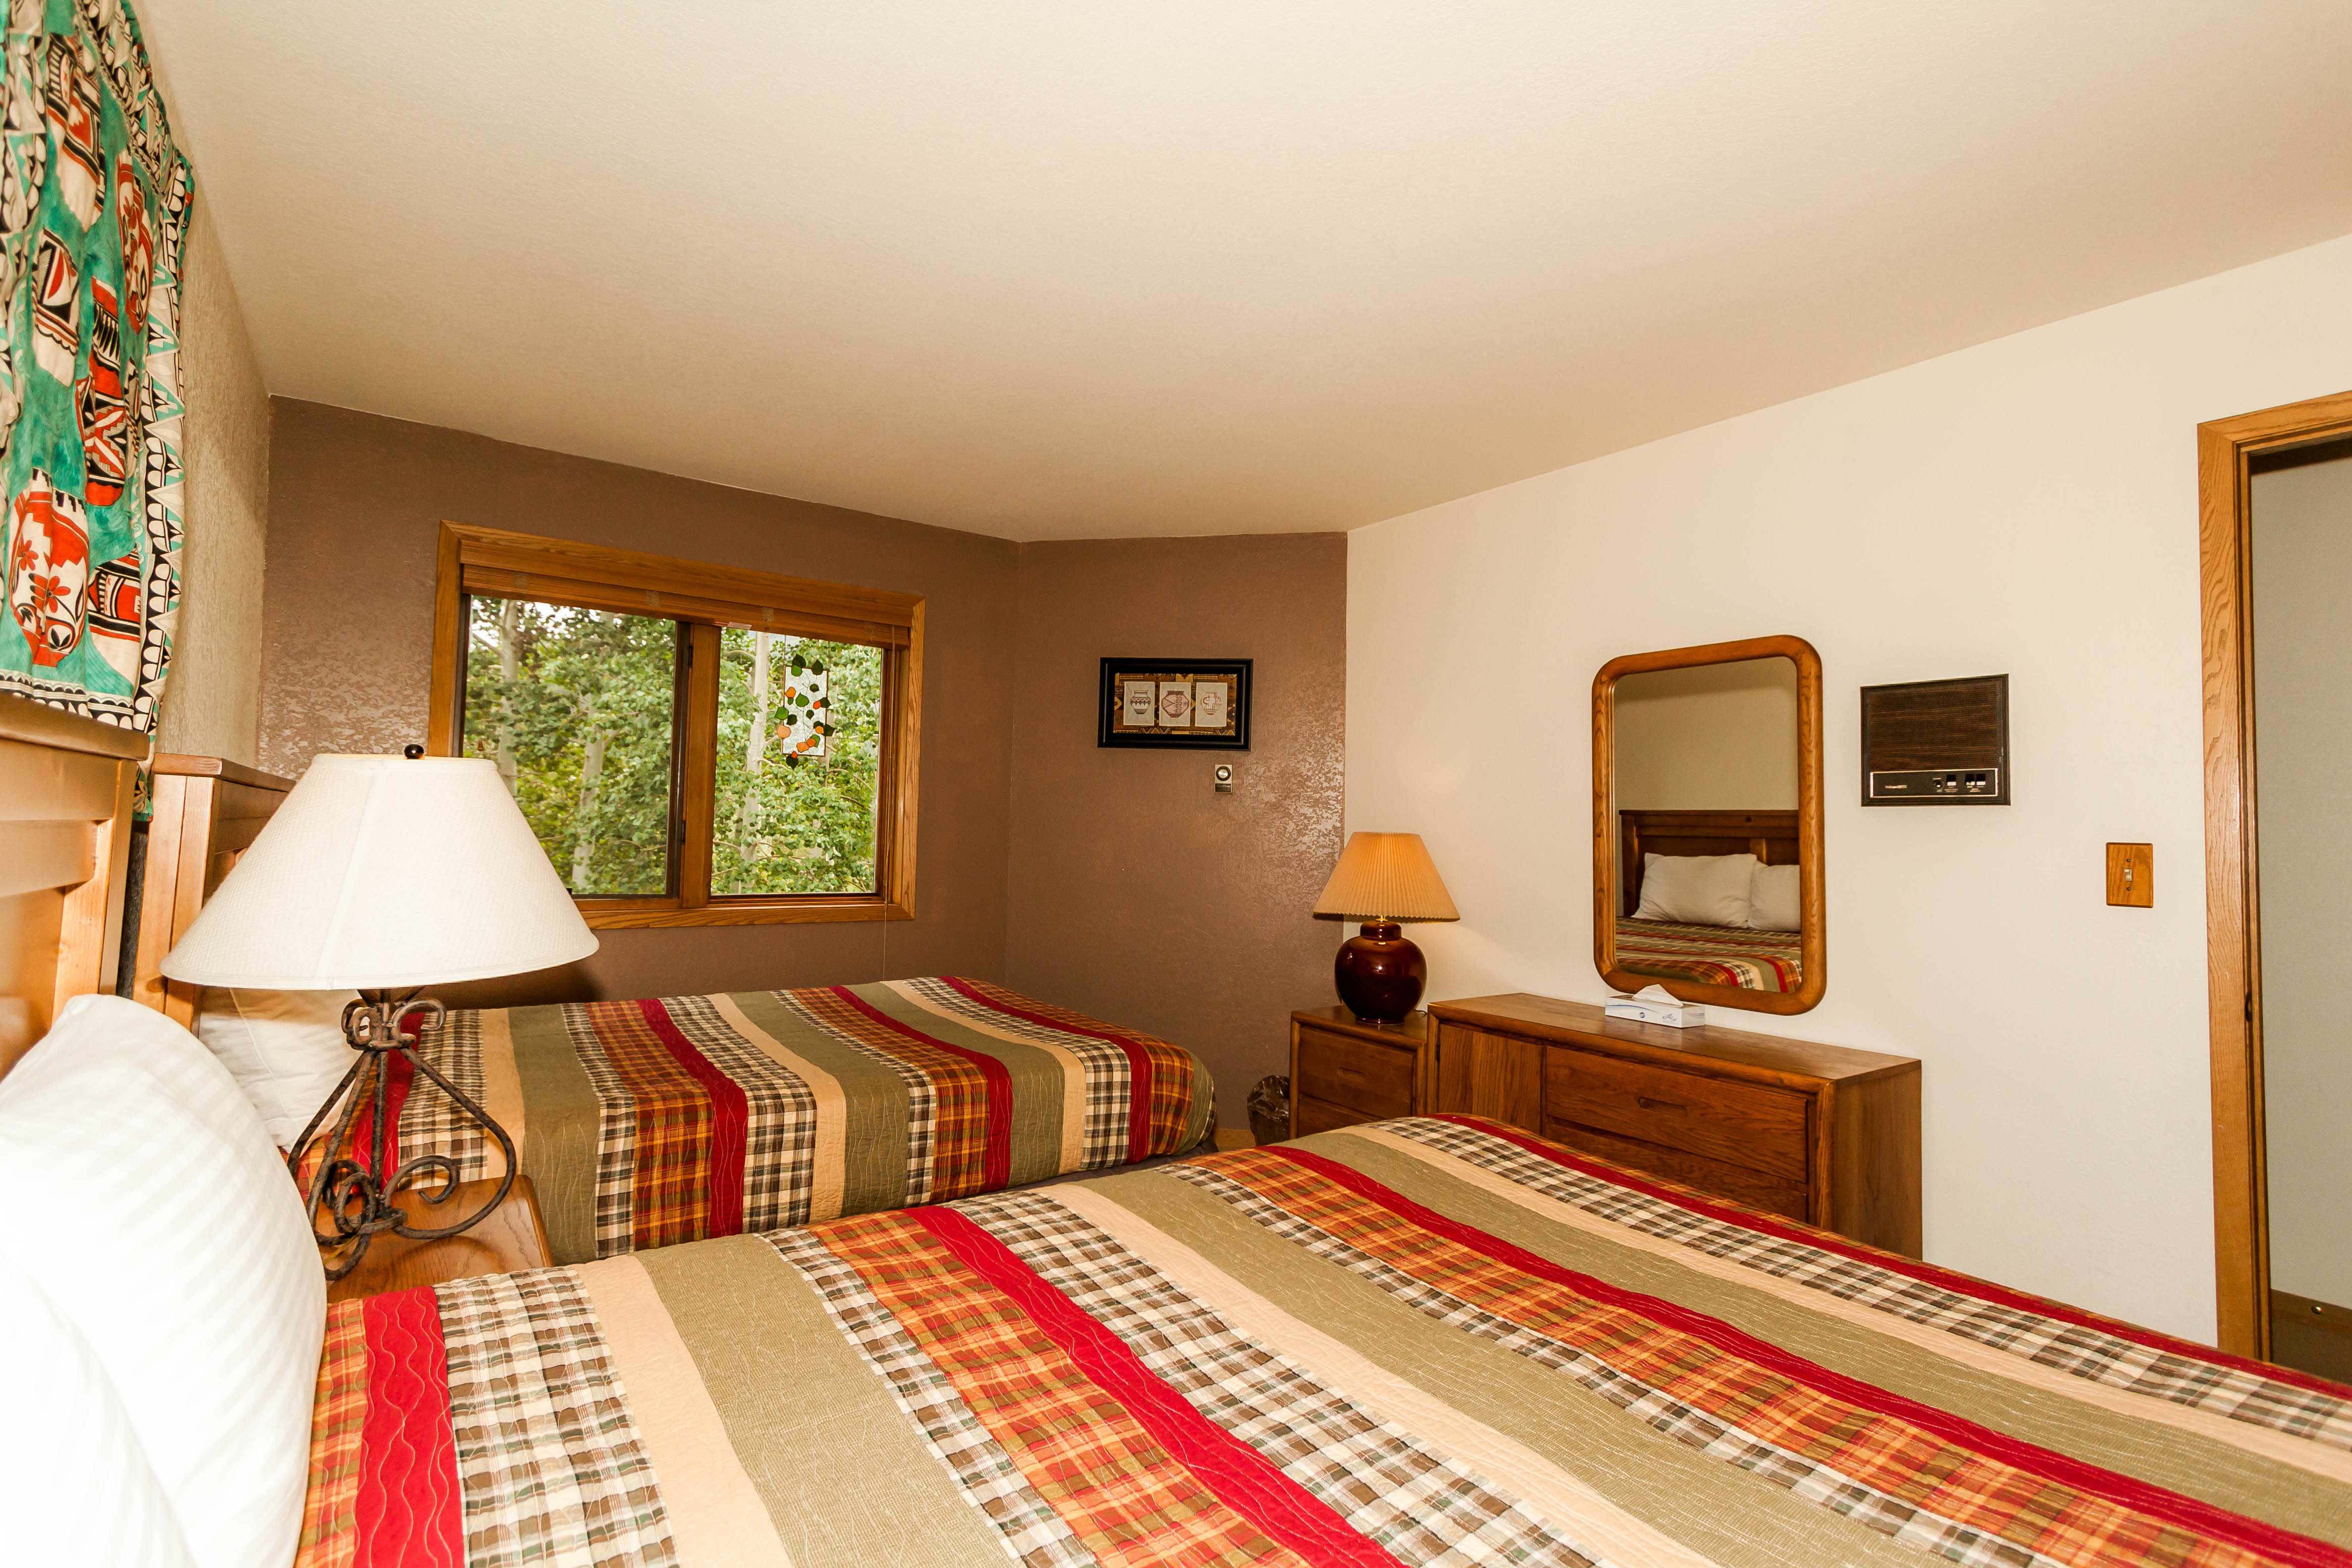 The guest bedroom features two queen-sized beds.